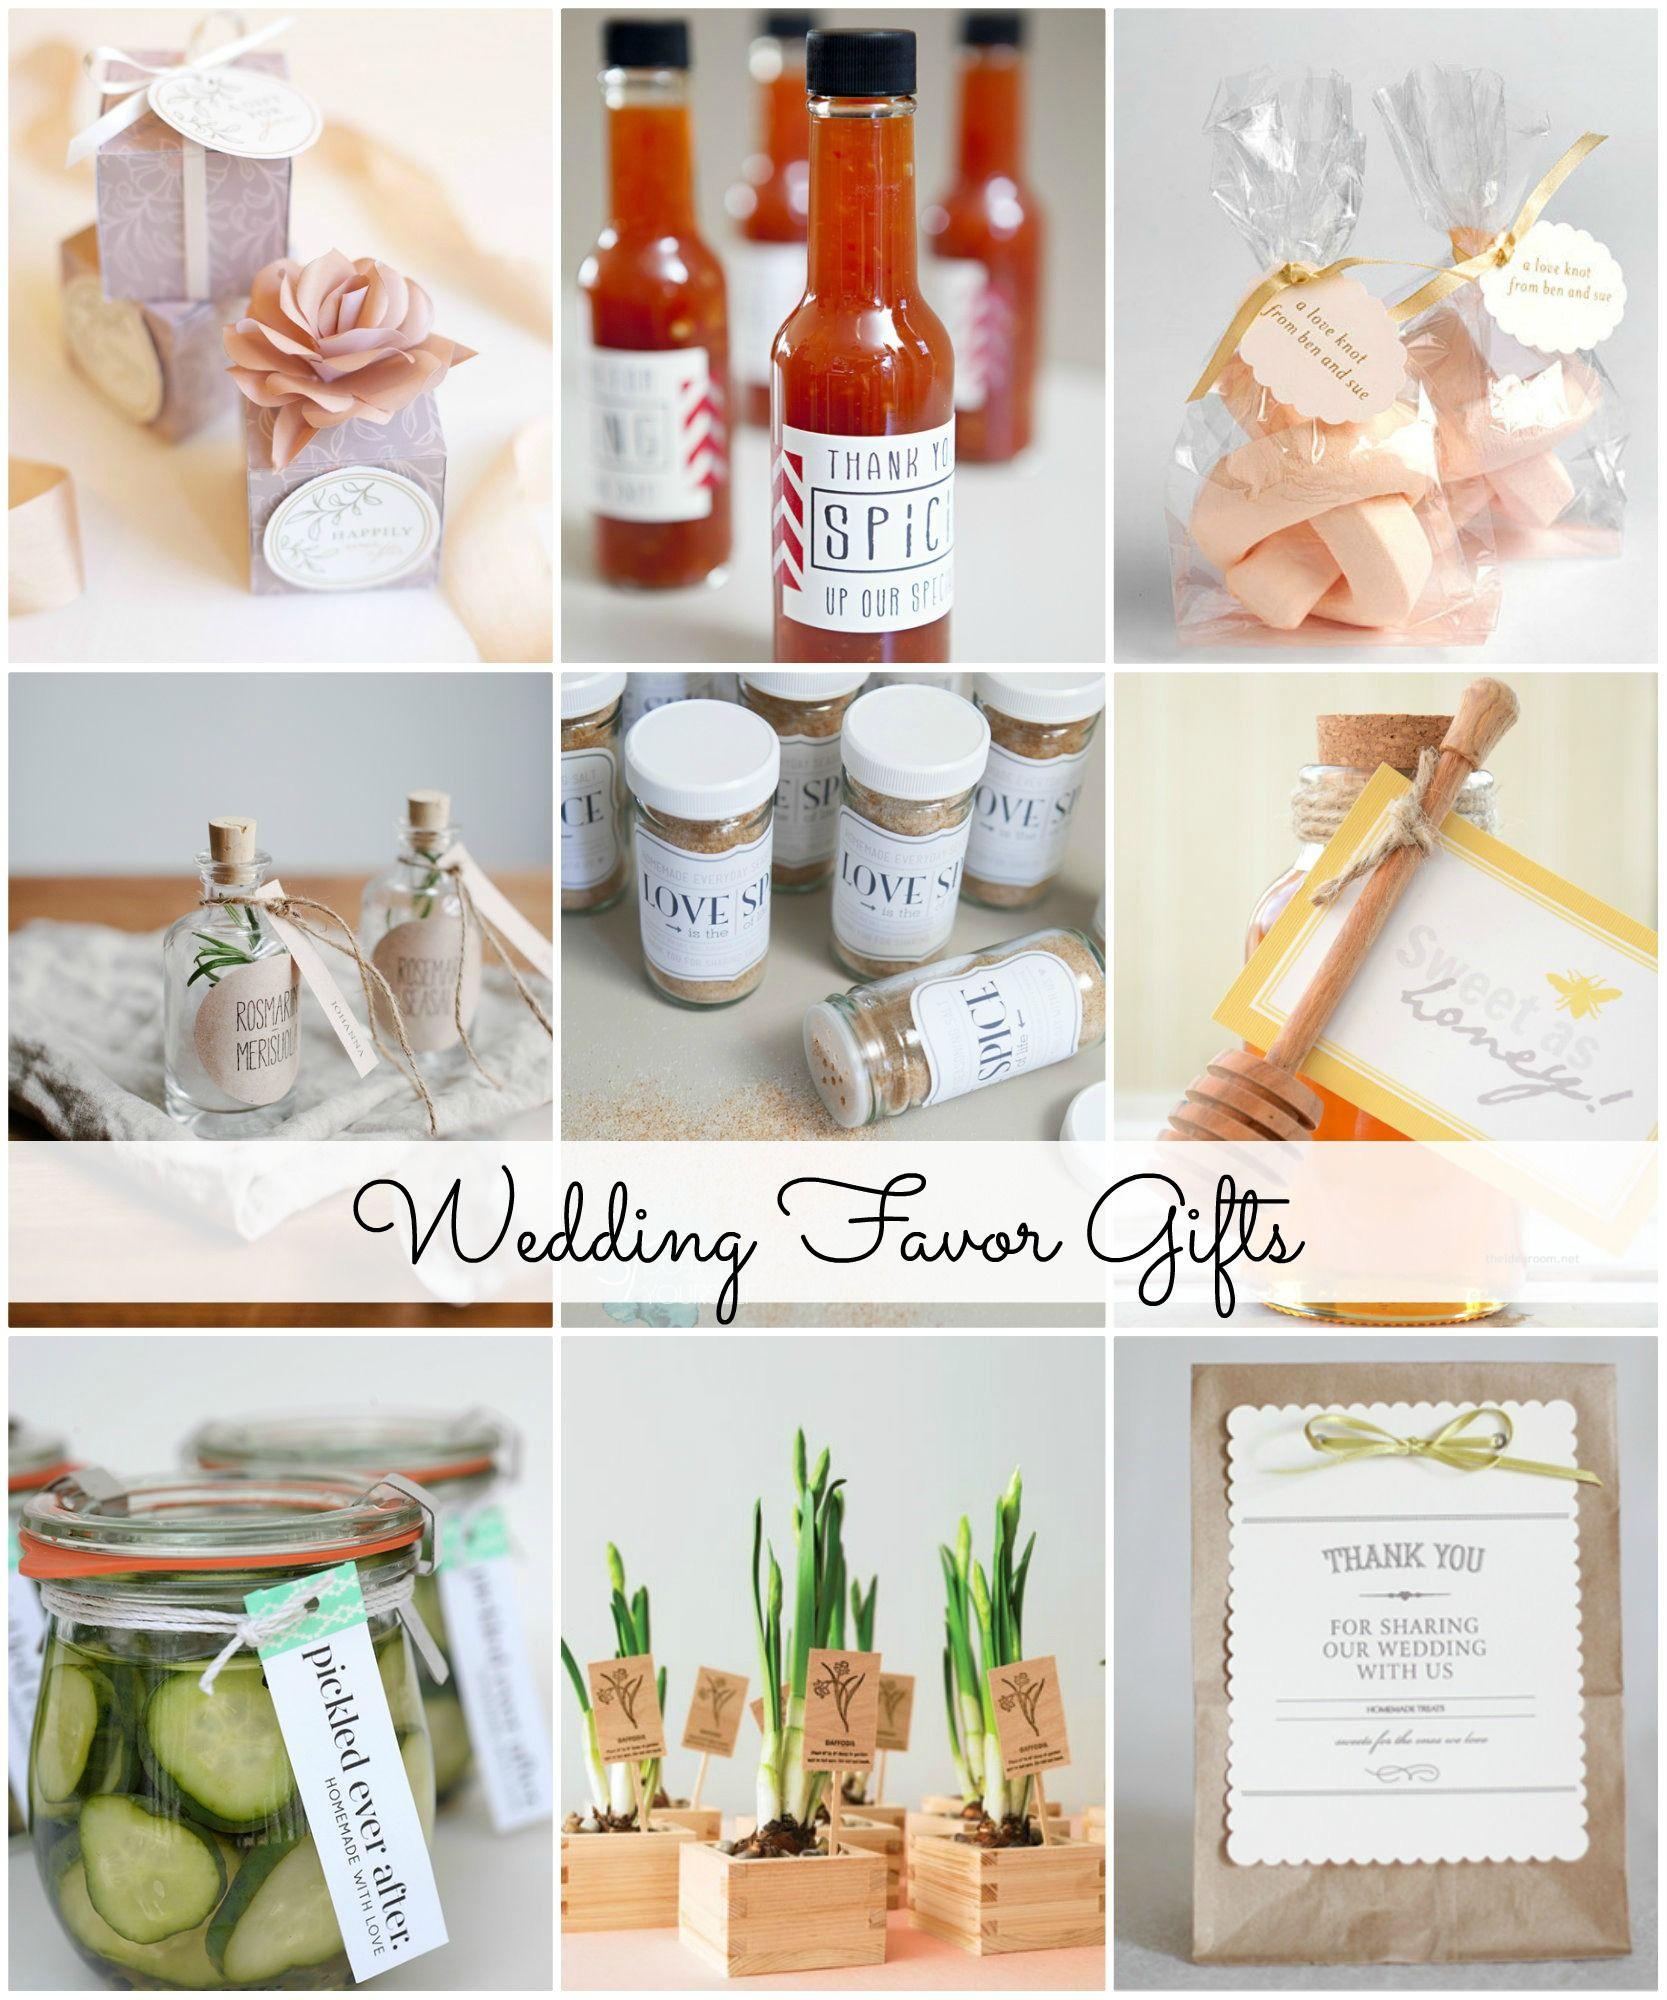 Wedding Favor Gift Ideas Diy Handmade Pinterest Favors Sirup Mangga By Sirop Gendhis These Would Be A Great Party With Little Change In Tags